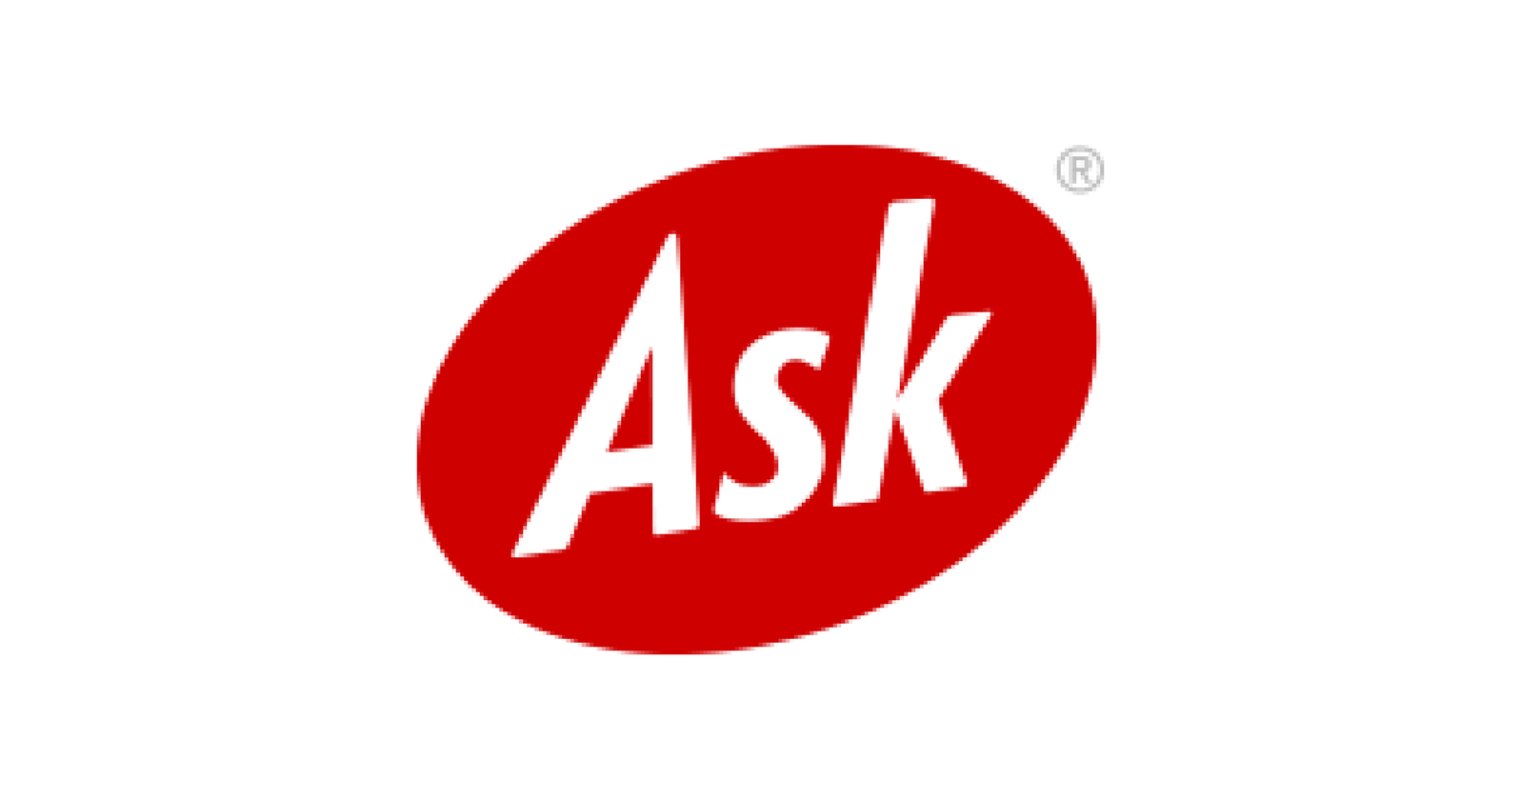 Ask.com Accidentally Leaks Private Search Query Data